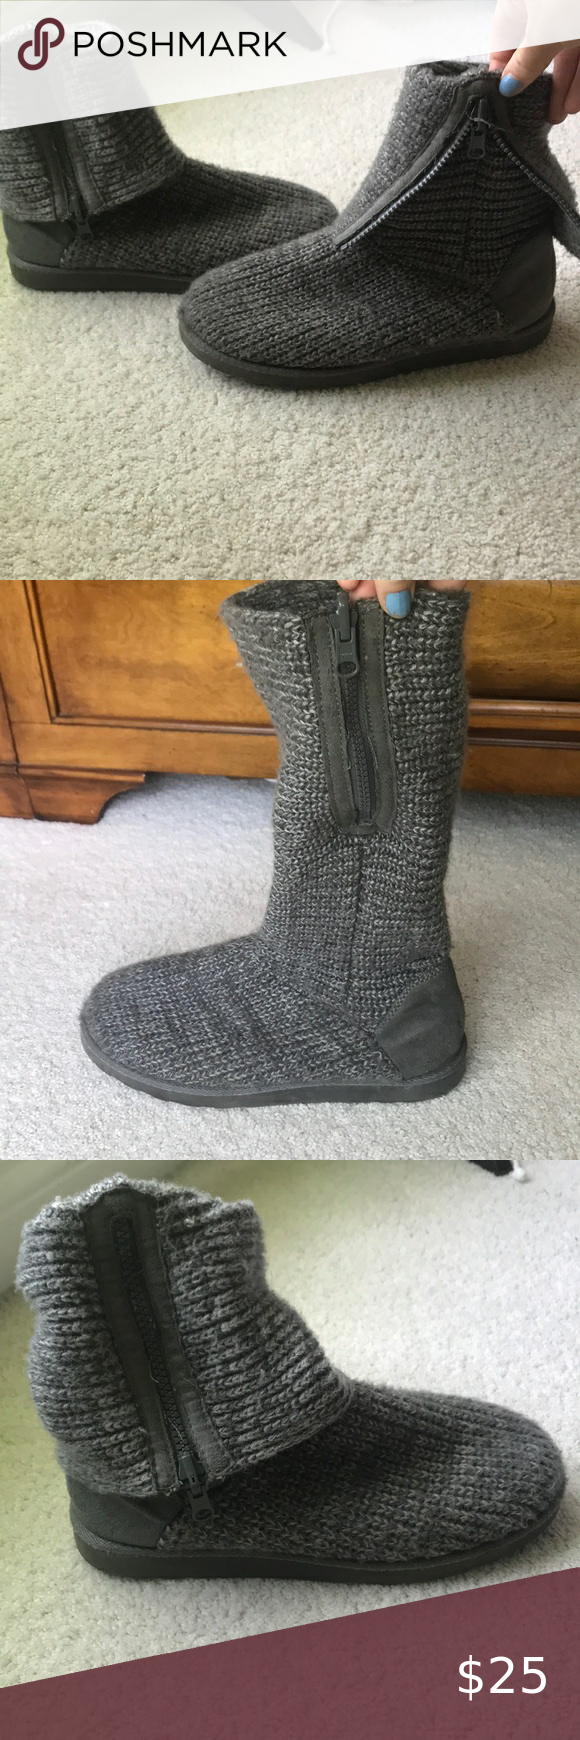 Kohl's So Grey knitted sweater boots in